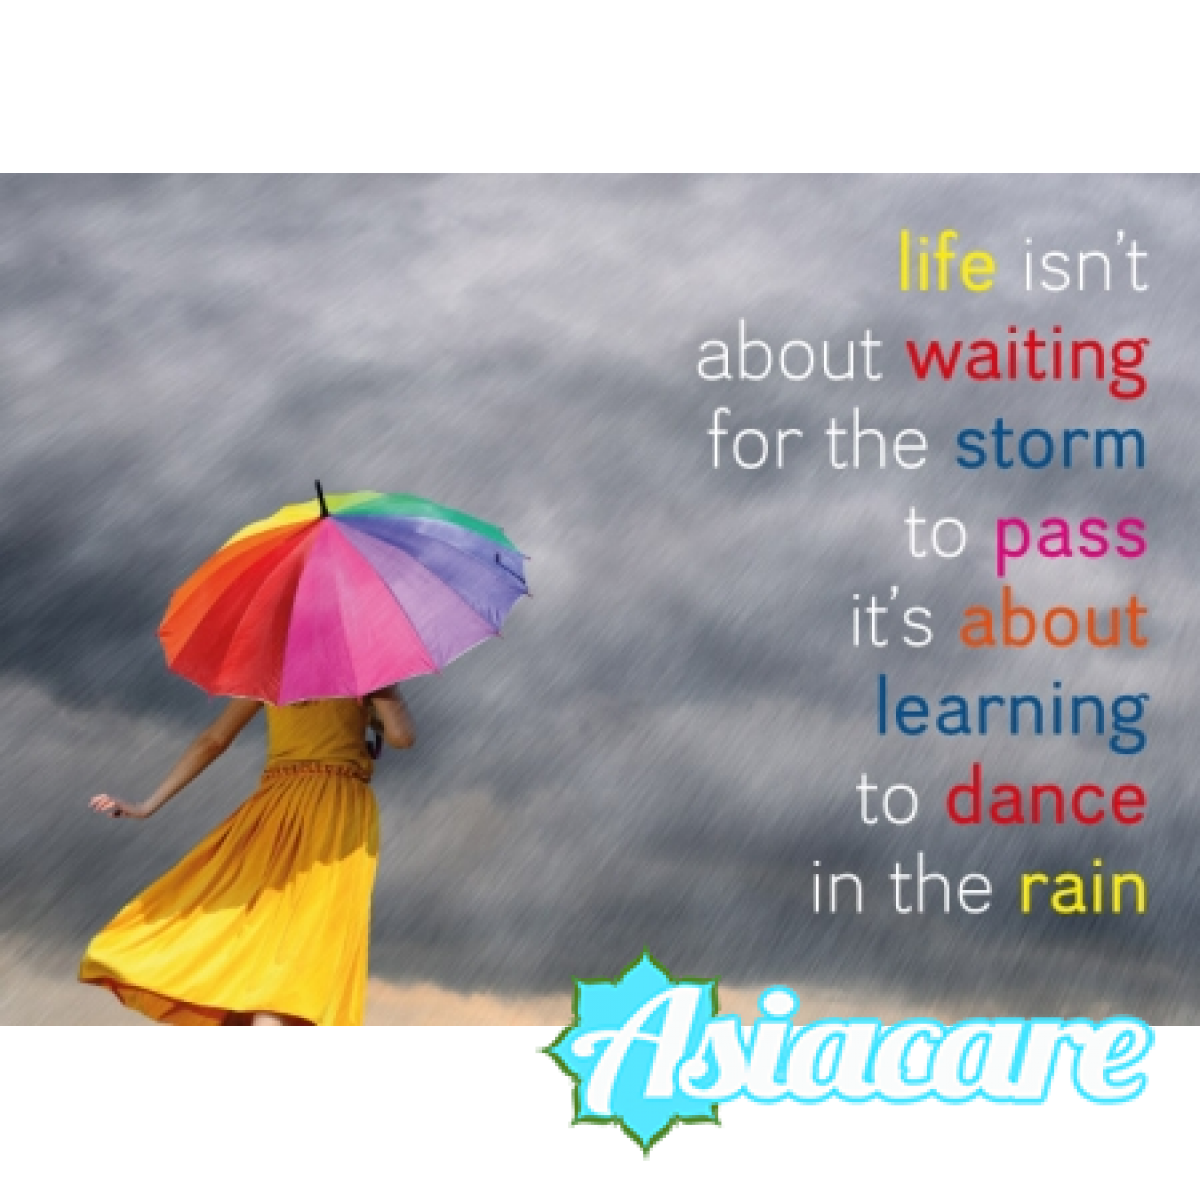 """Поздравителна картичка """"Life isn't about waiting for the storm to pass, it's about learning to dance in the rain"""""""